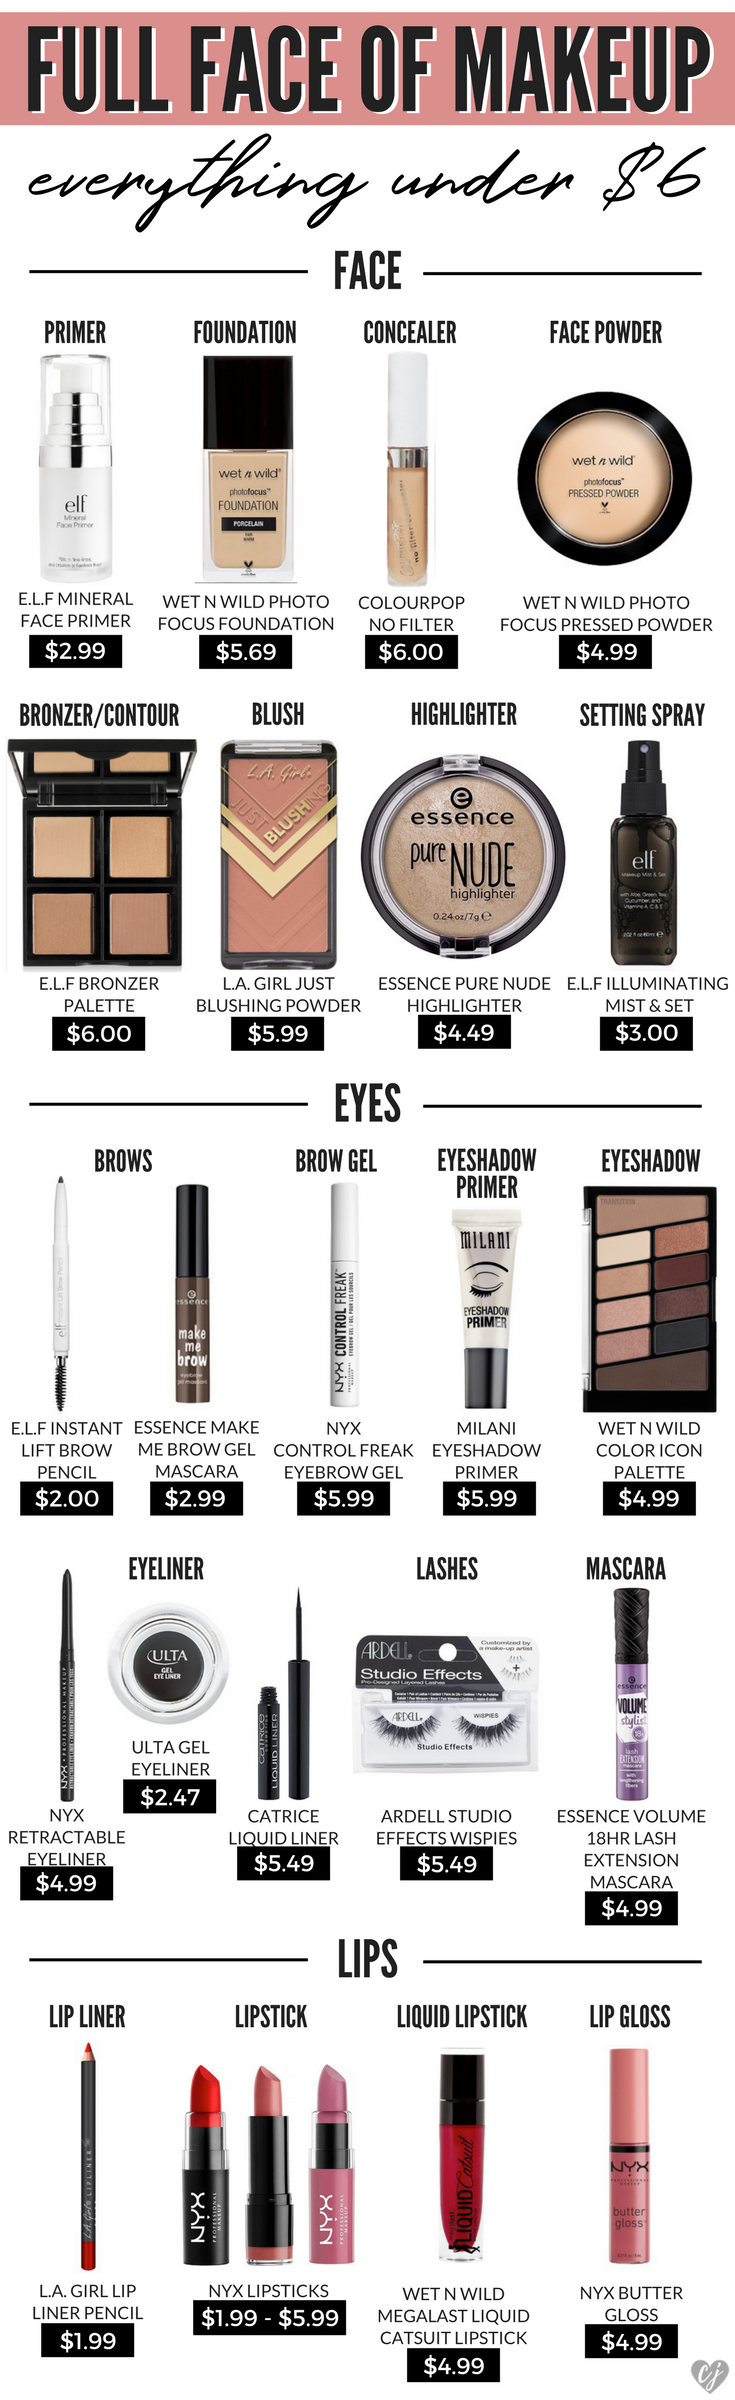 Full Face of Makeup everything under $6